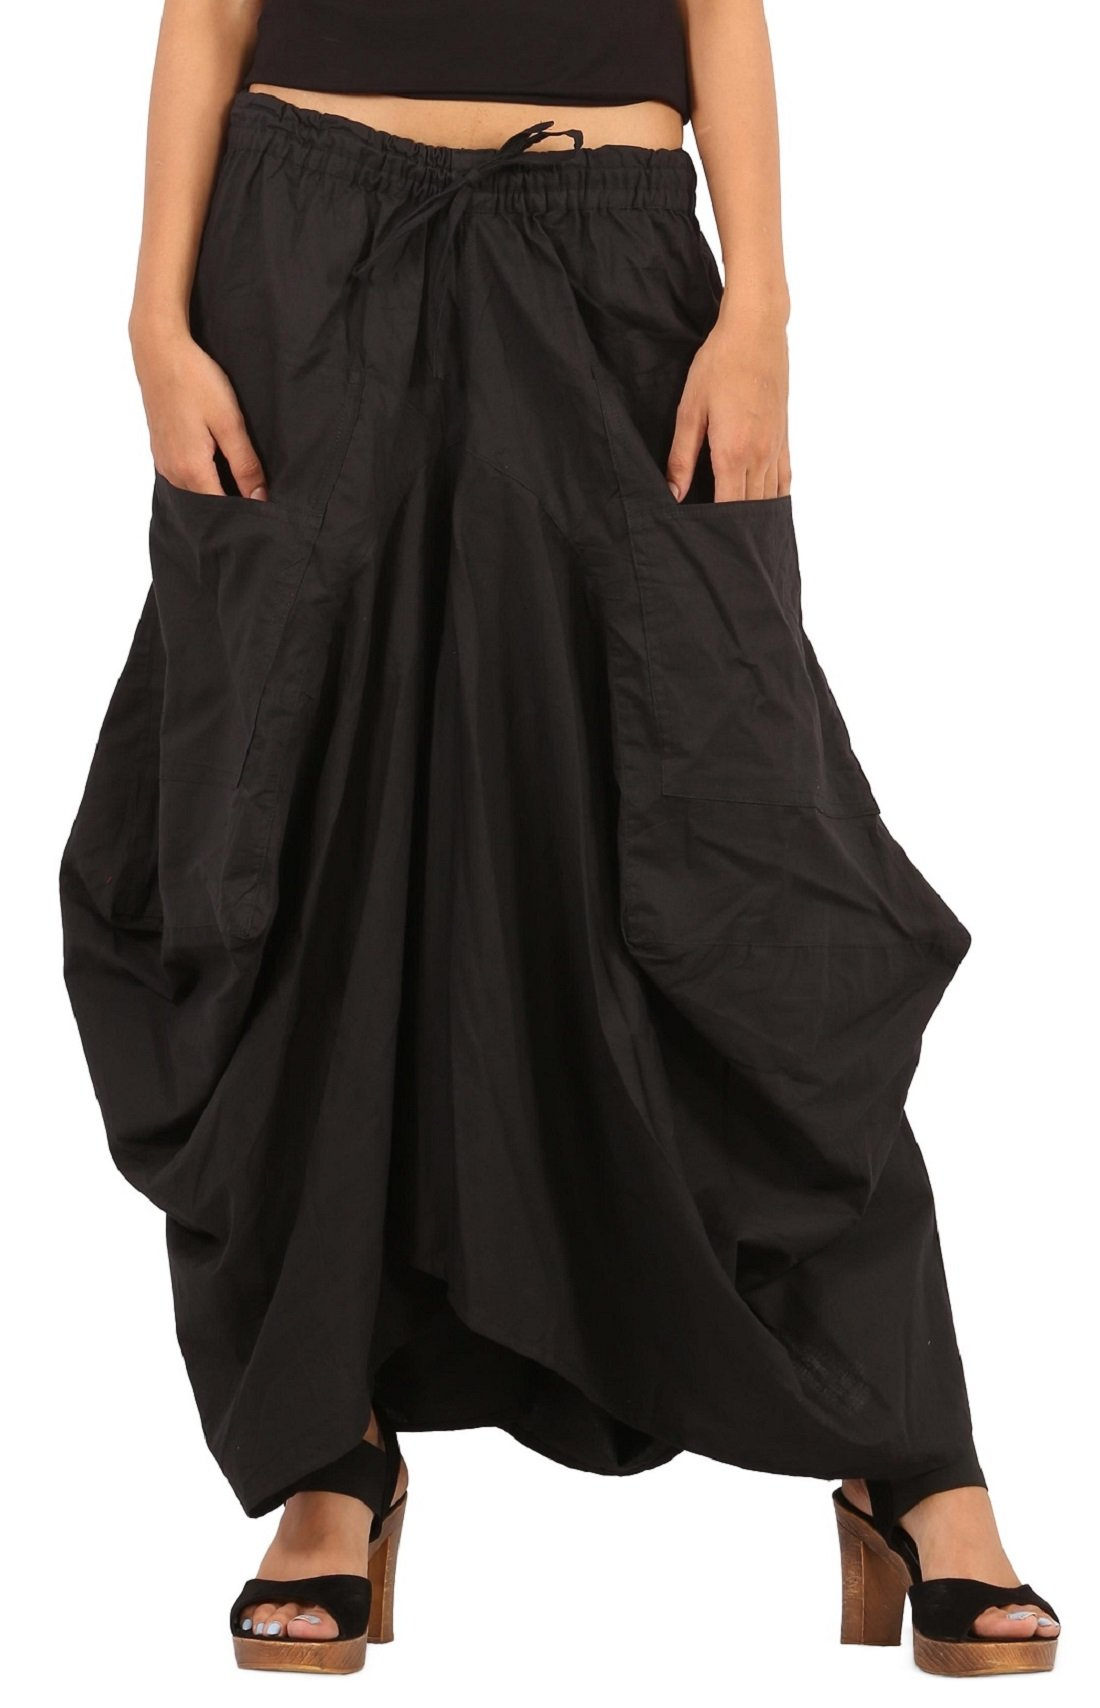 The Harem Studio Womens Girls Cotton Ankle Length Casual Long Skirt - 2 Pockets - Balloon Style (Black)